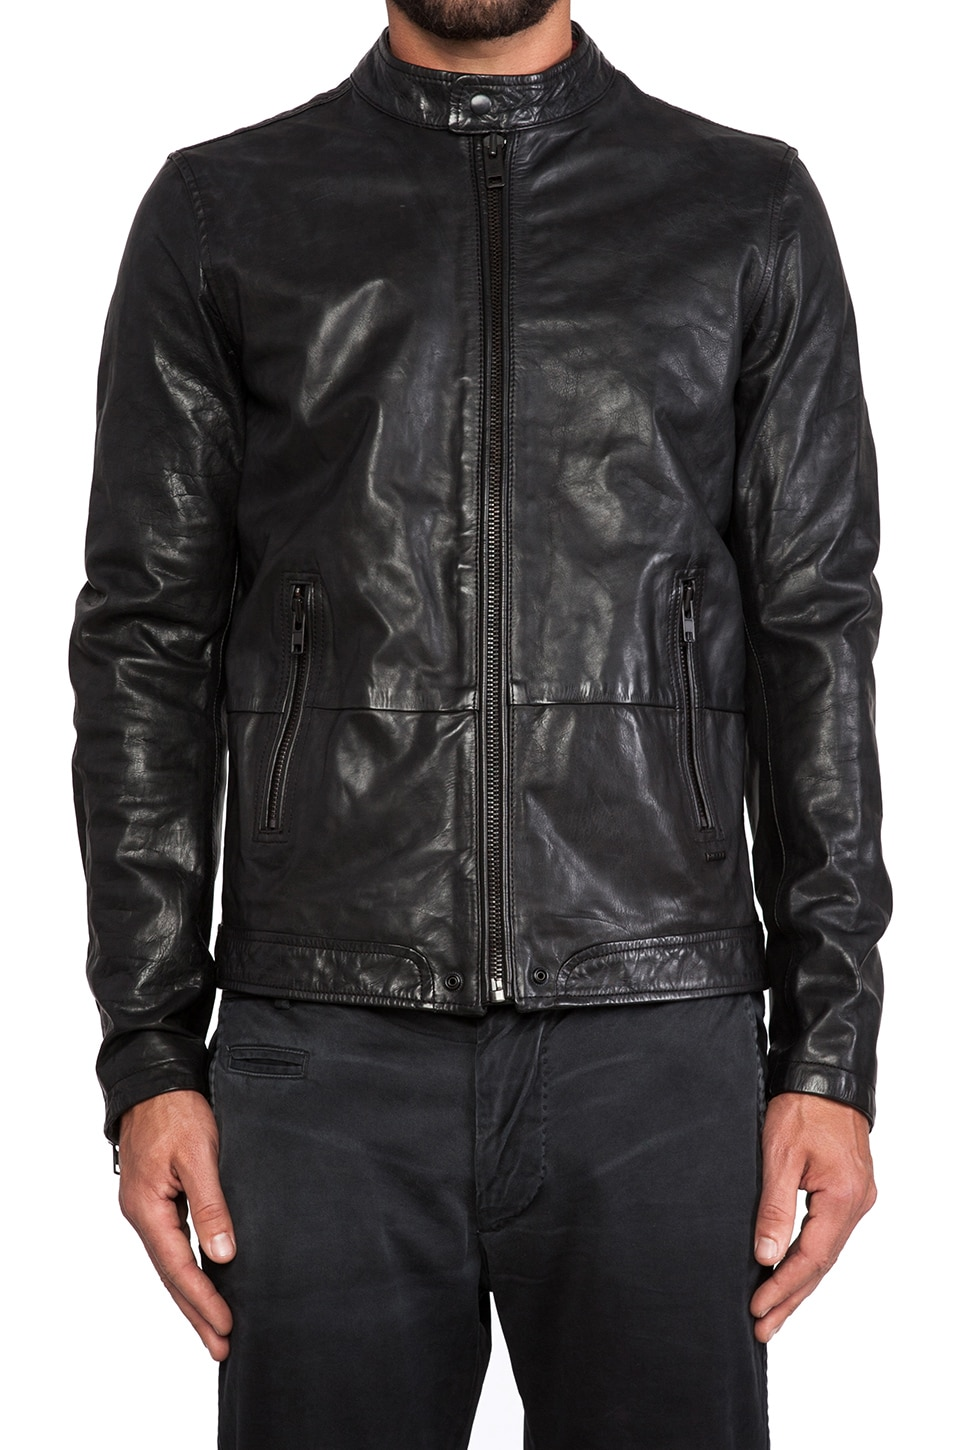 Diesel Thermal Leather Jacket in Black | REVOLVE